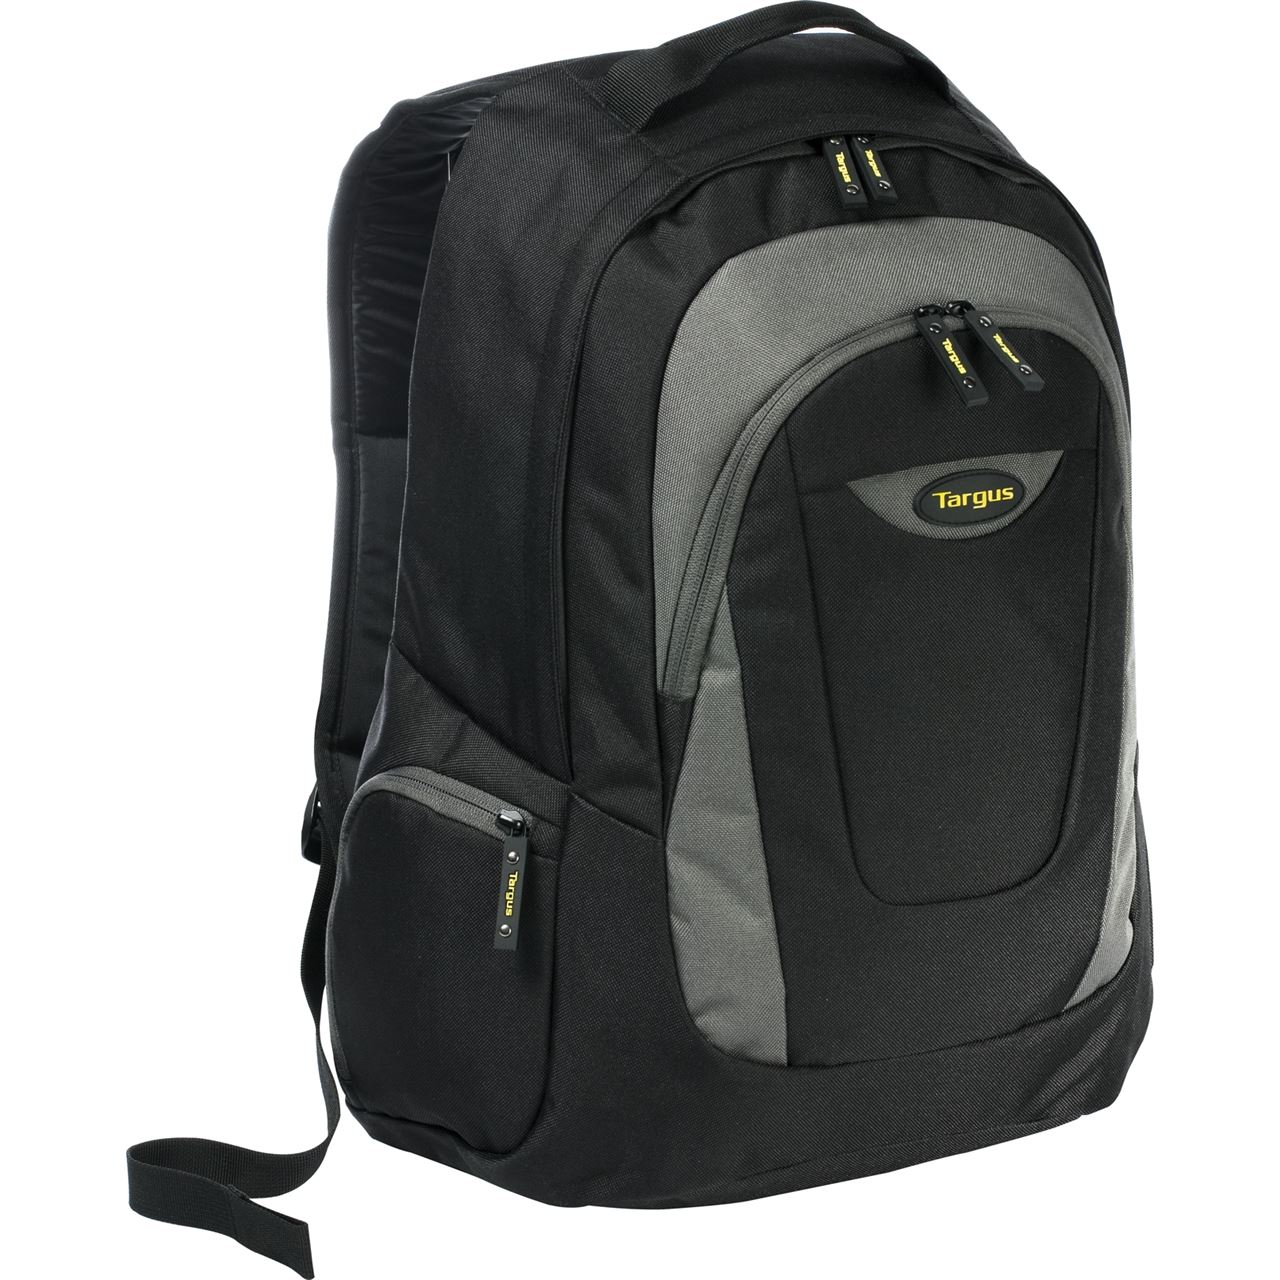 "16"" Trek Laptop Backpack - TSB193US - Black/Gray: Backpacks: Targus"